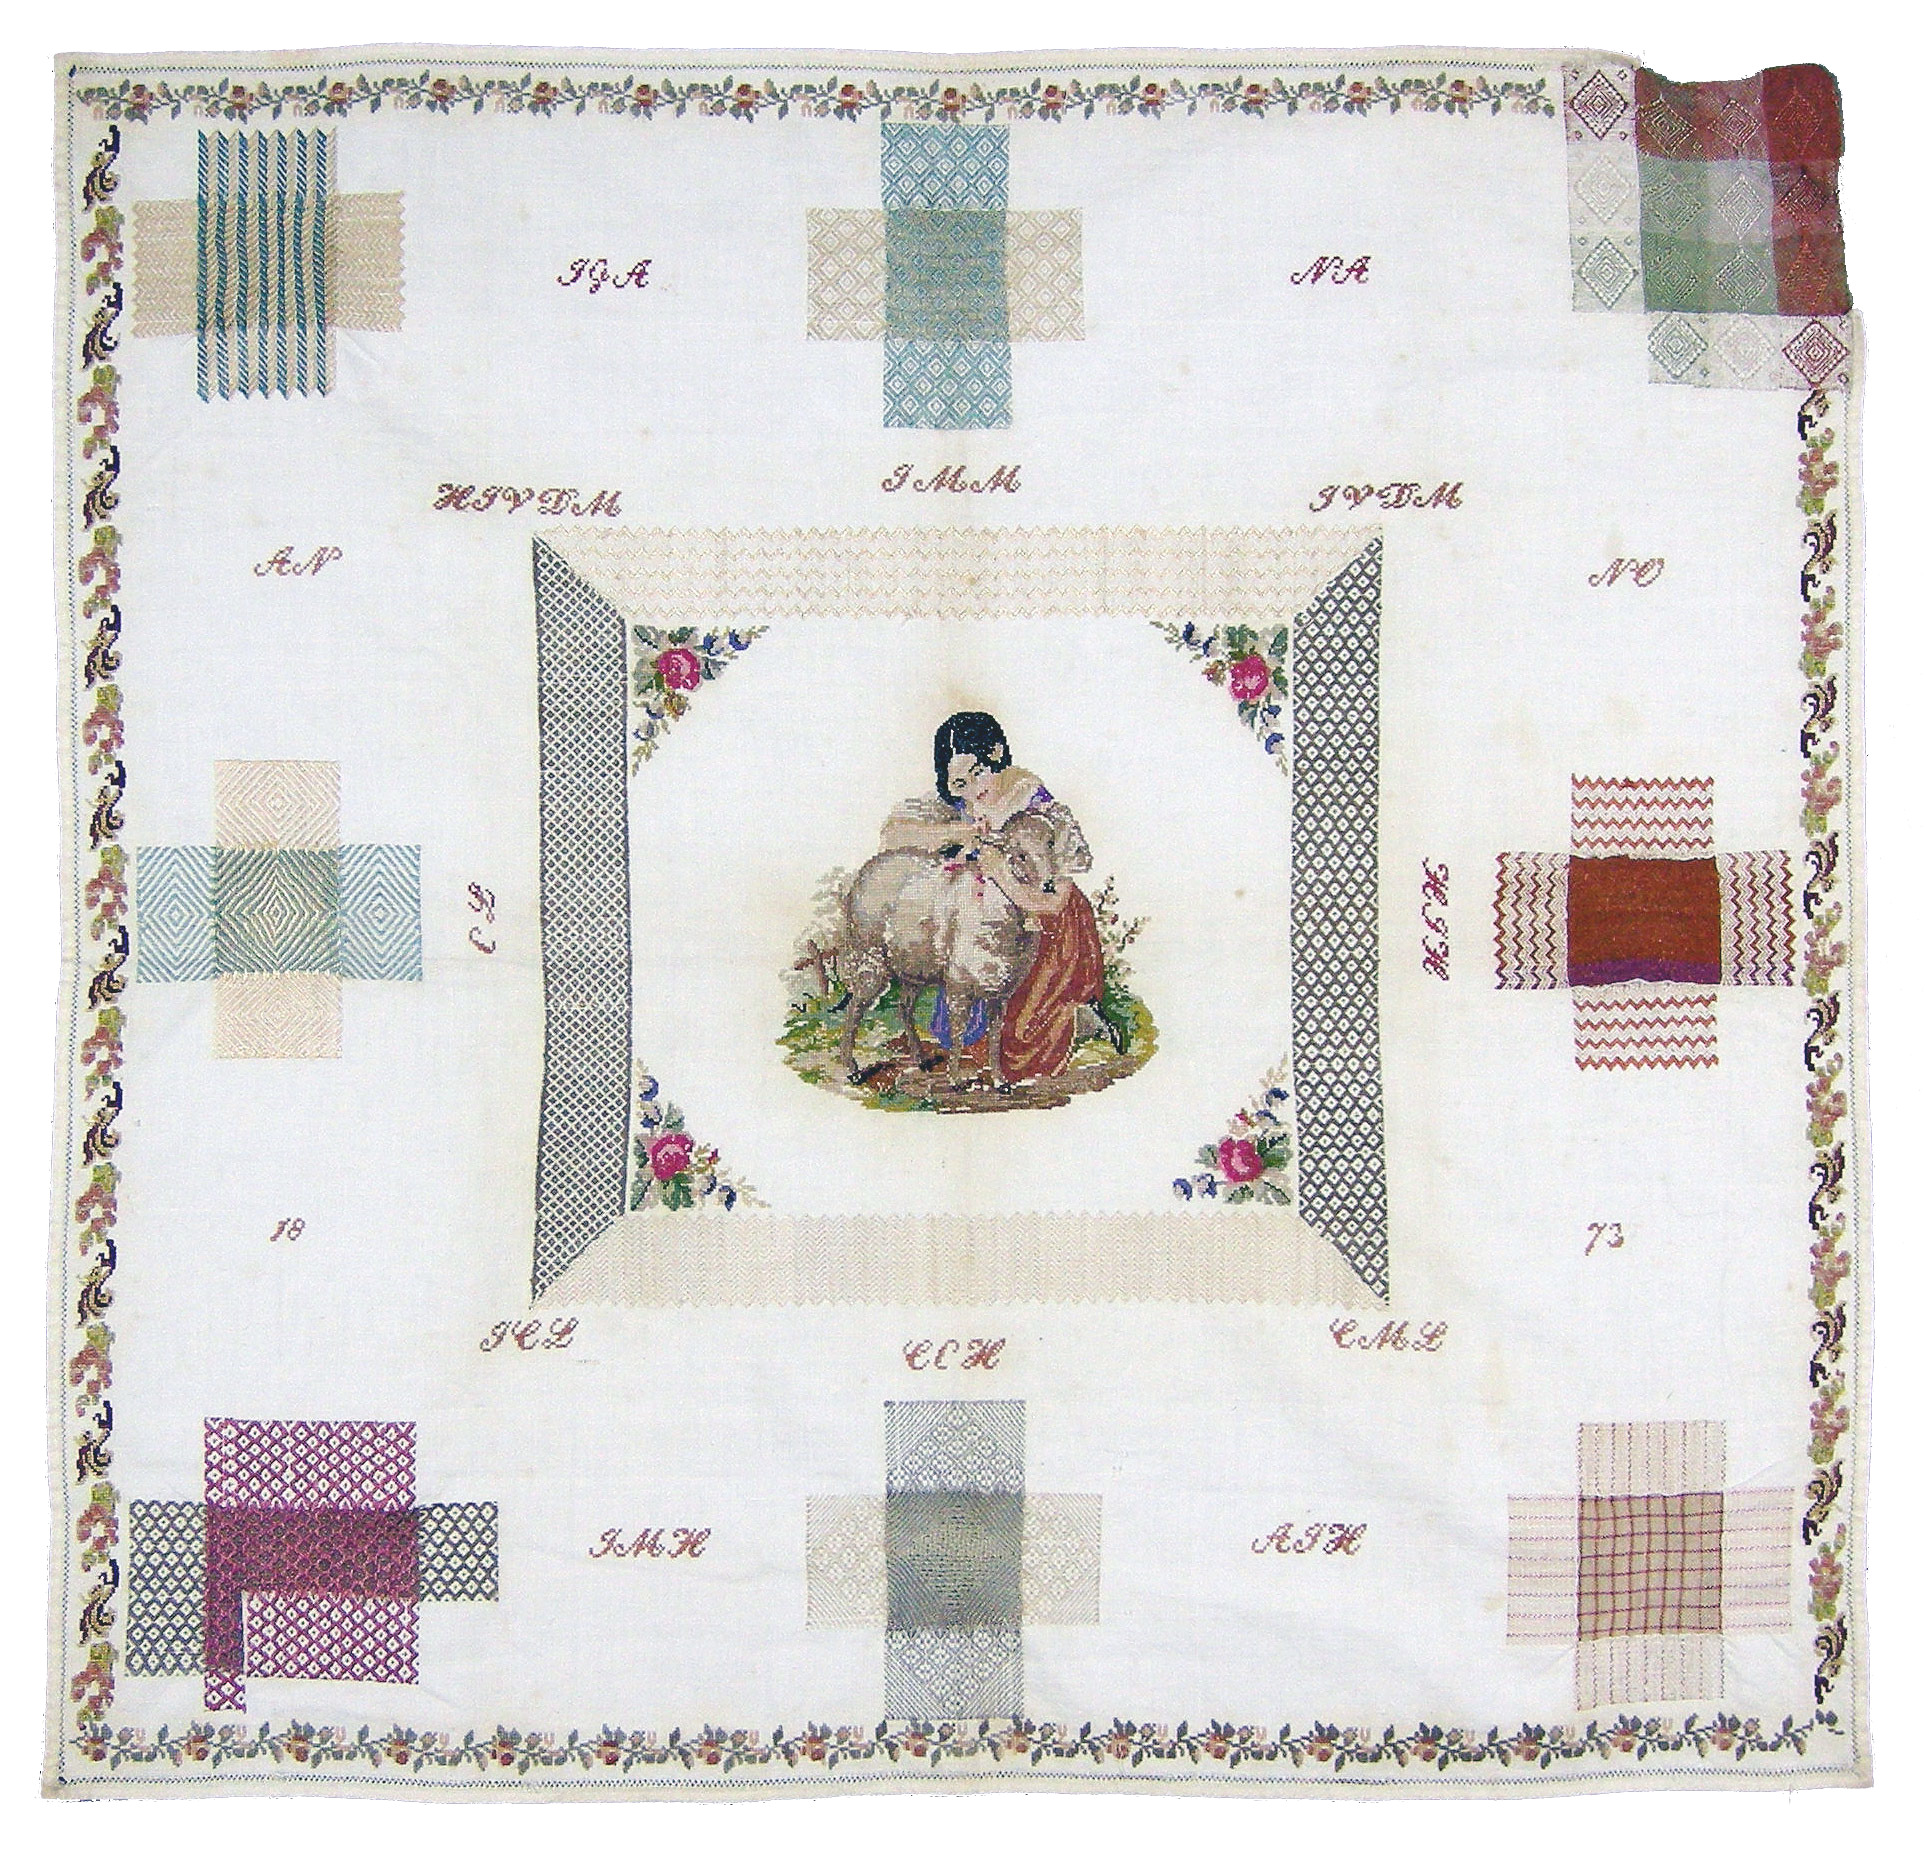 Dutch darning sampler 1873